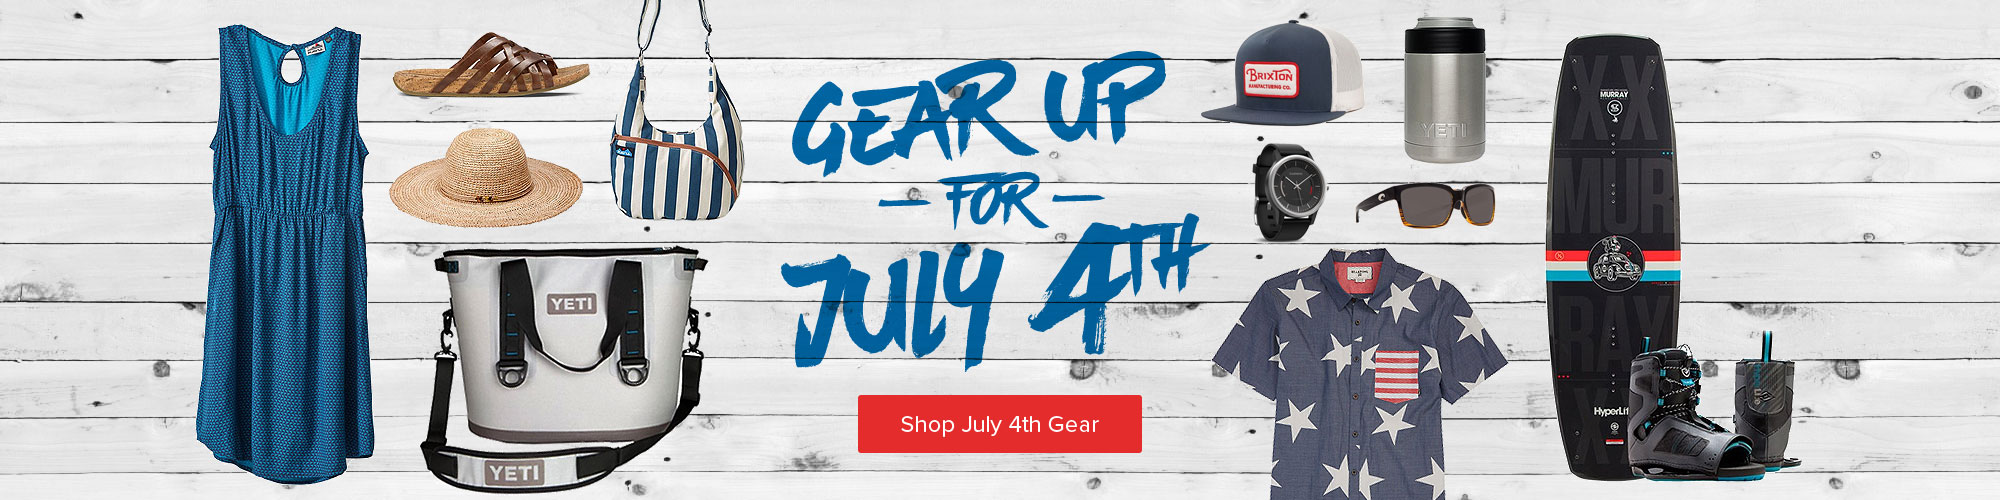 Gear Up for July 4th - Shop Now